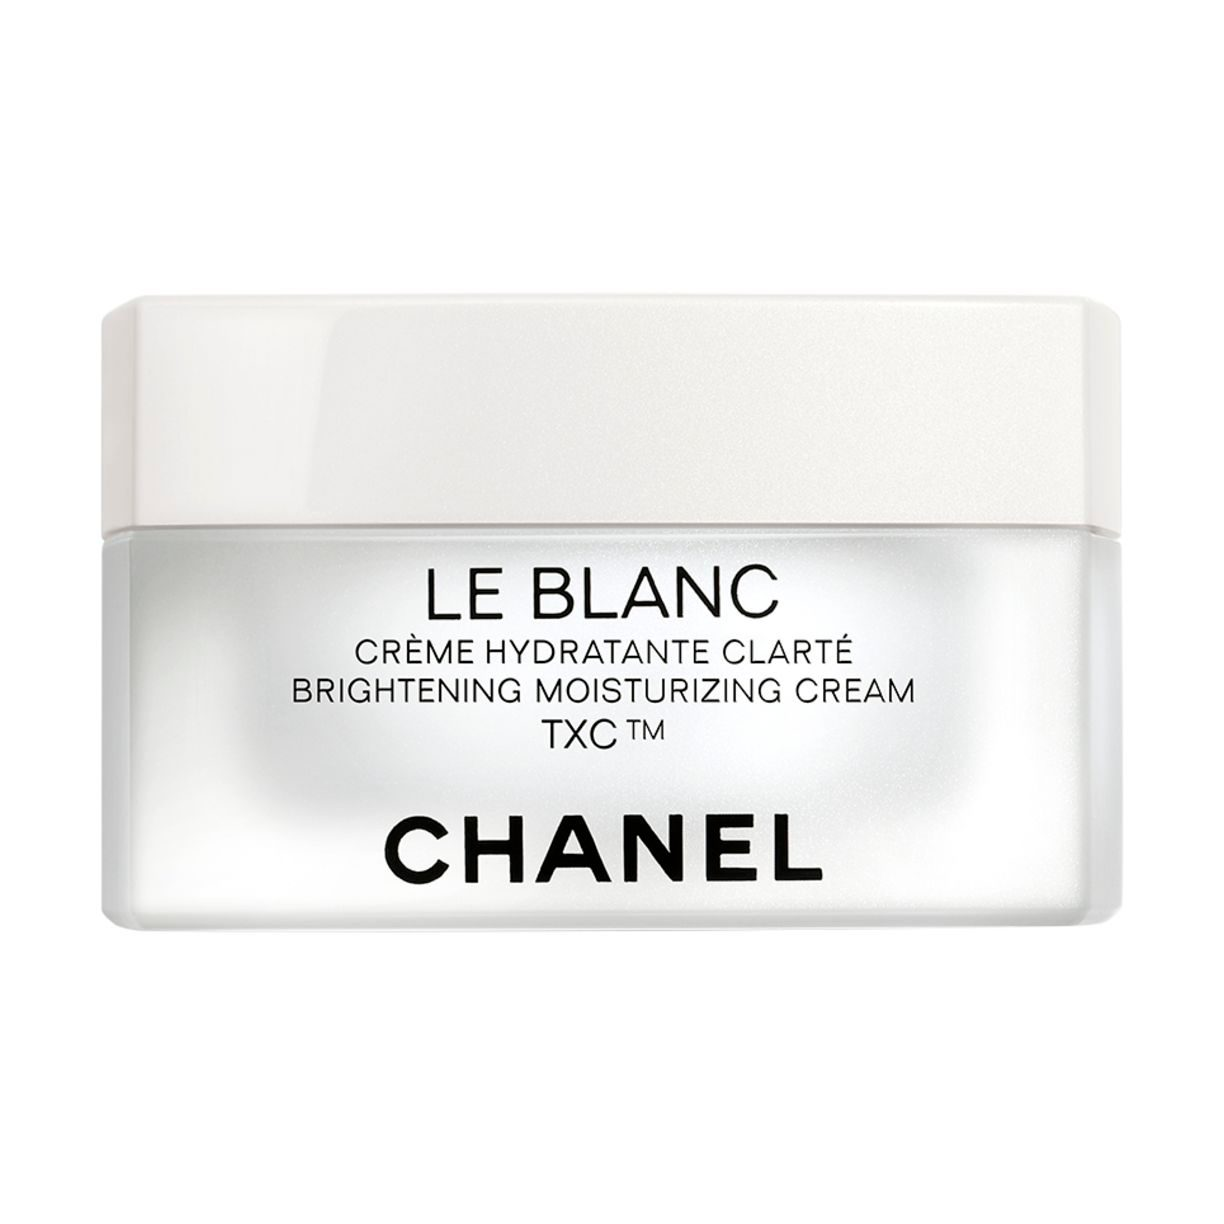 LE BLANC BRIGHTENING MOISTURIZING CREAM TXC